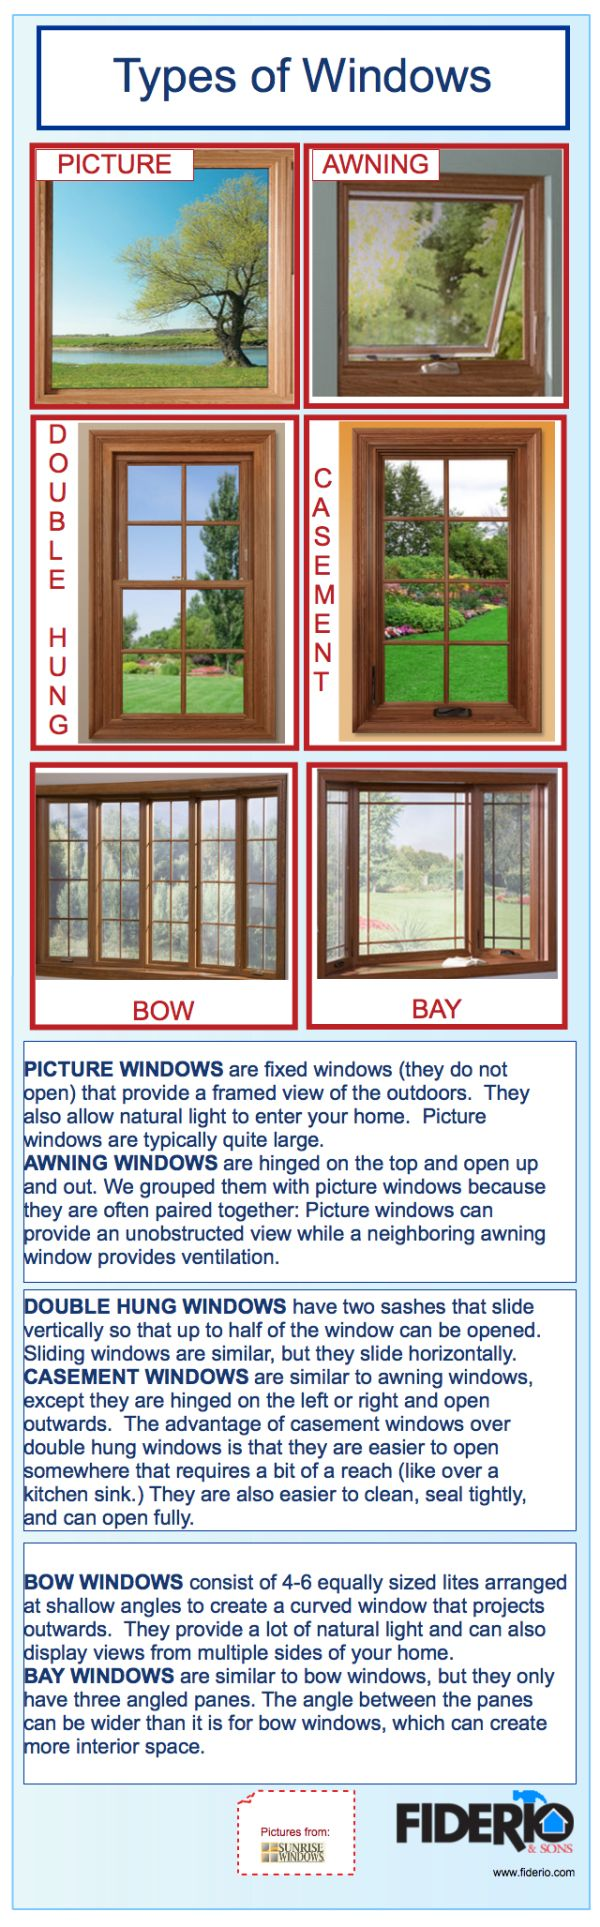 18 best windows infographics images on pinterest infographics 1types of windows resized 600 png 600 1927